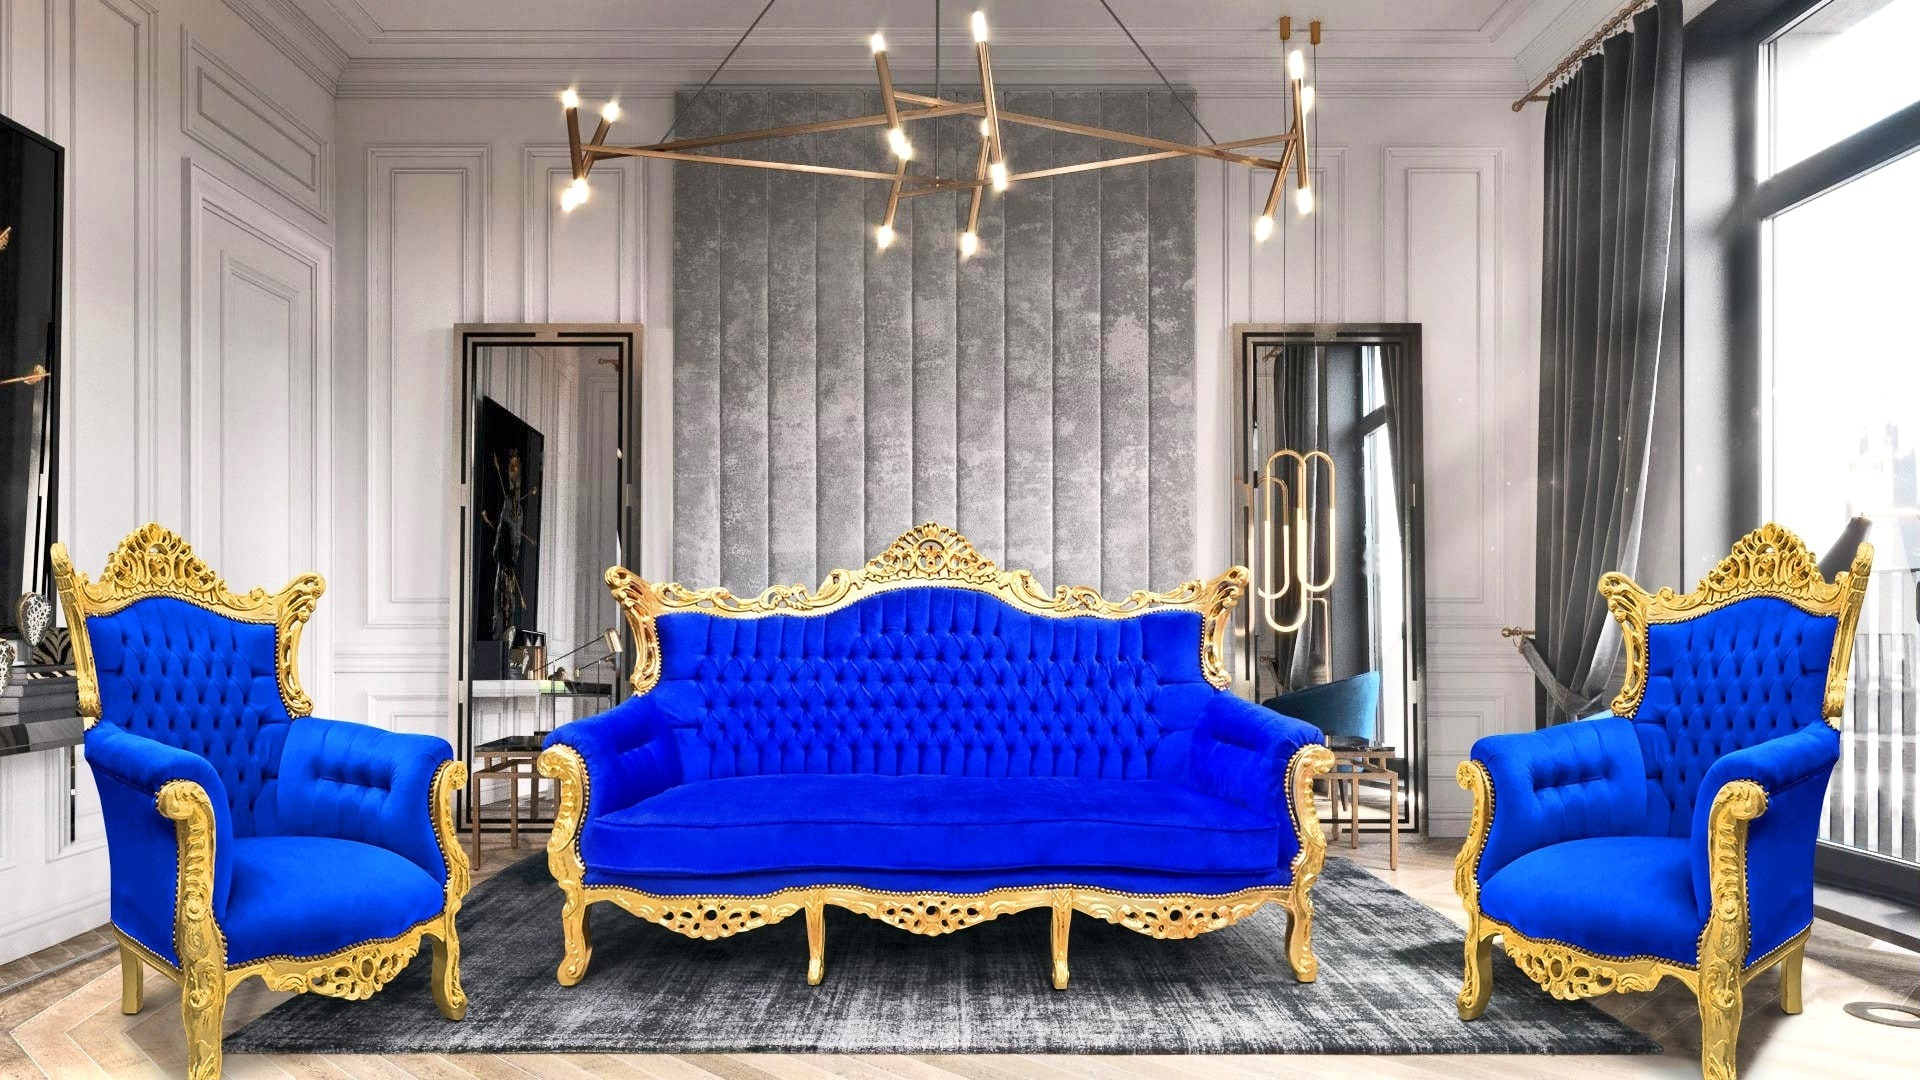 Baroque furniture gold and blue